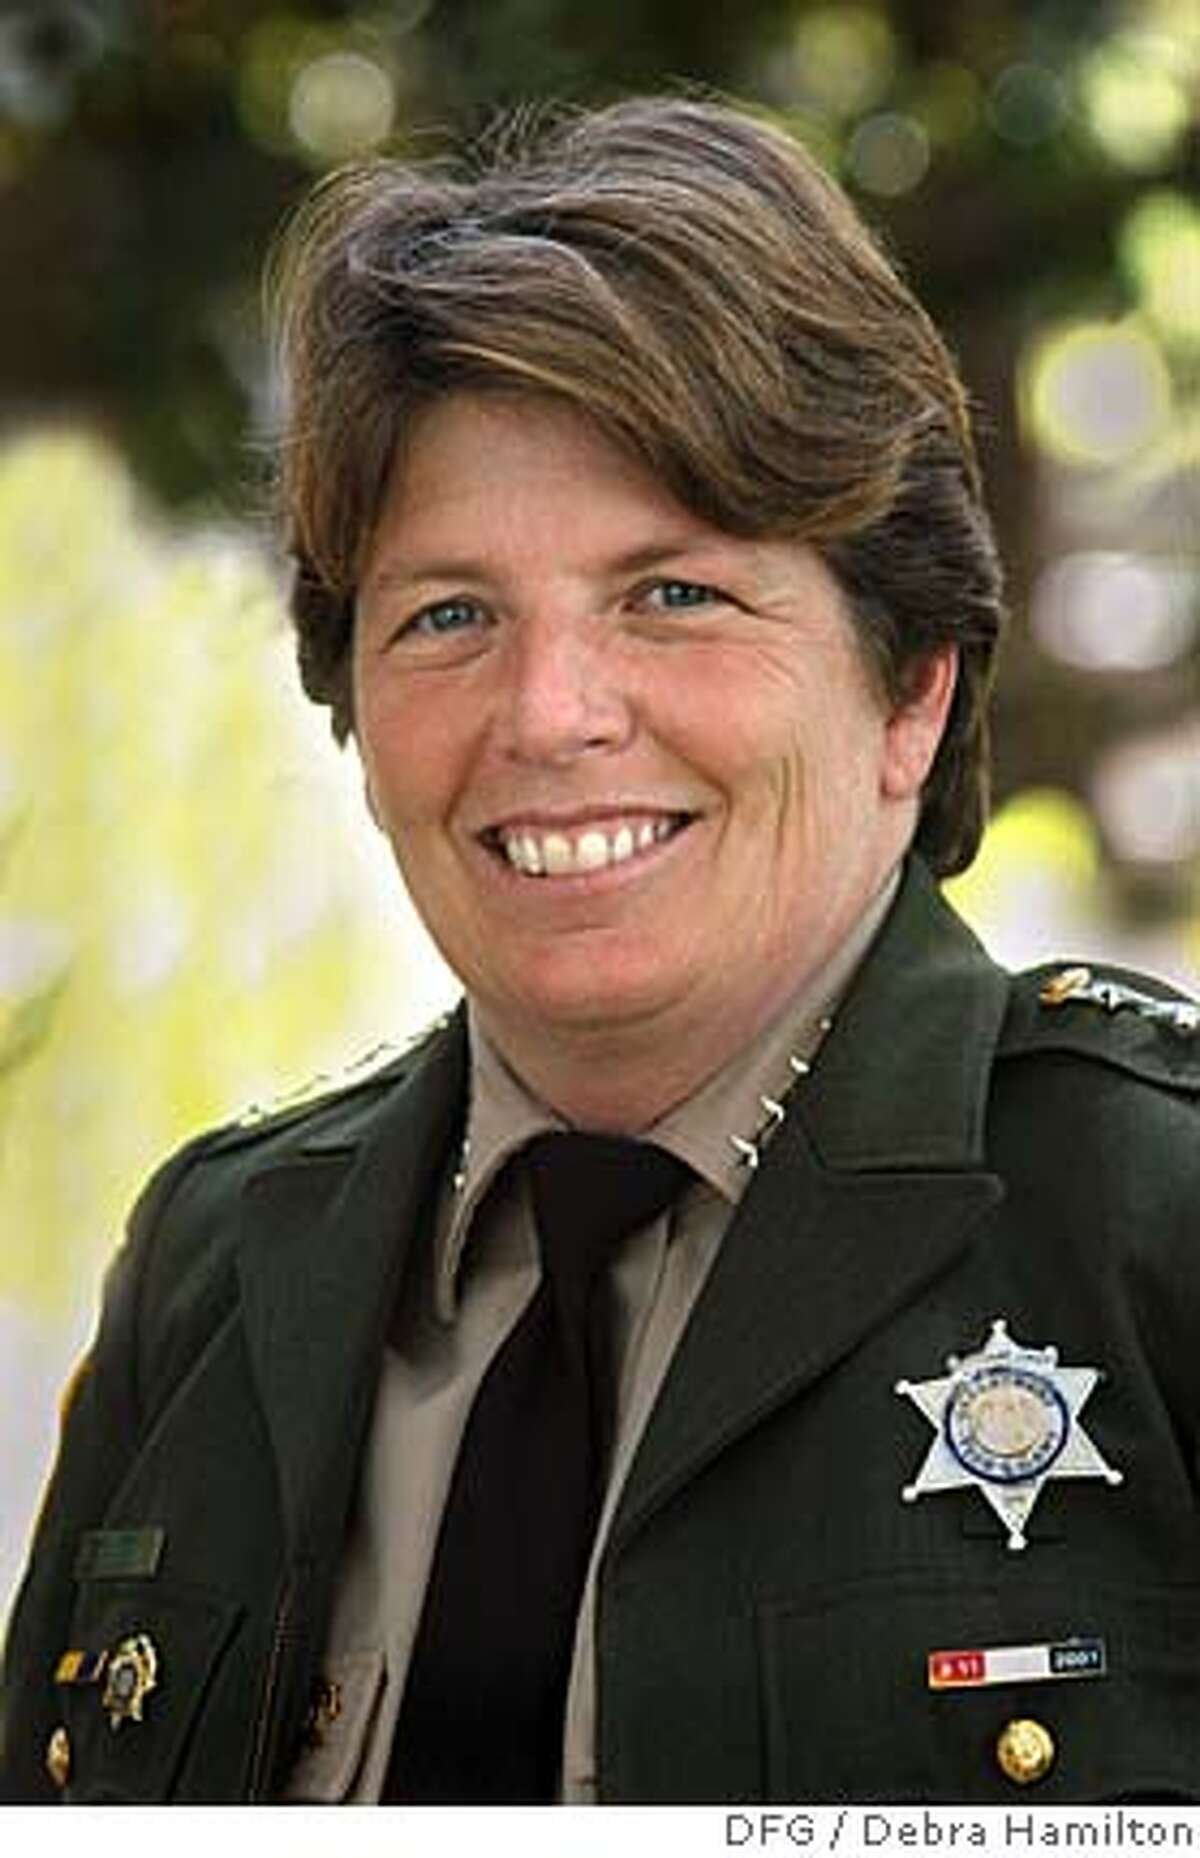 Photo of Nancy Foley Credit: DFG Photos by Debra Hamilton Ran on: 09-23-2007 DFG executive Nancy Foley warns an impending shortage of game wardens is tragic. Ran on: 09-23-2007 DFG executive Nancy Foley warns an impending shortage of game wardens is tragic.